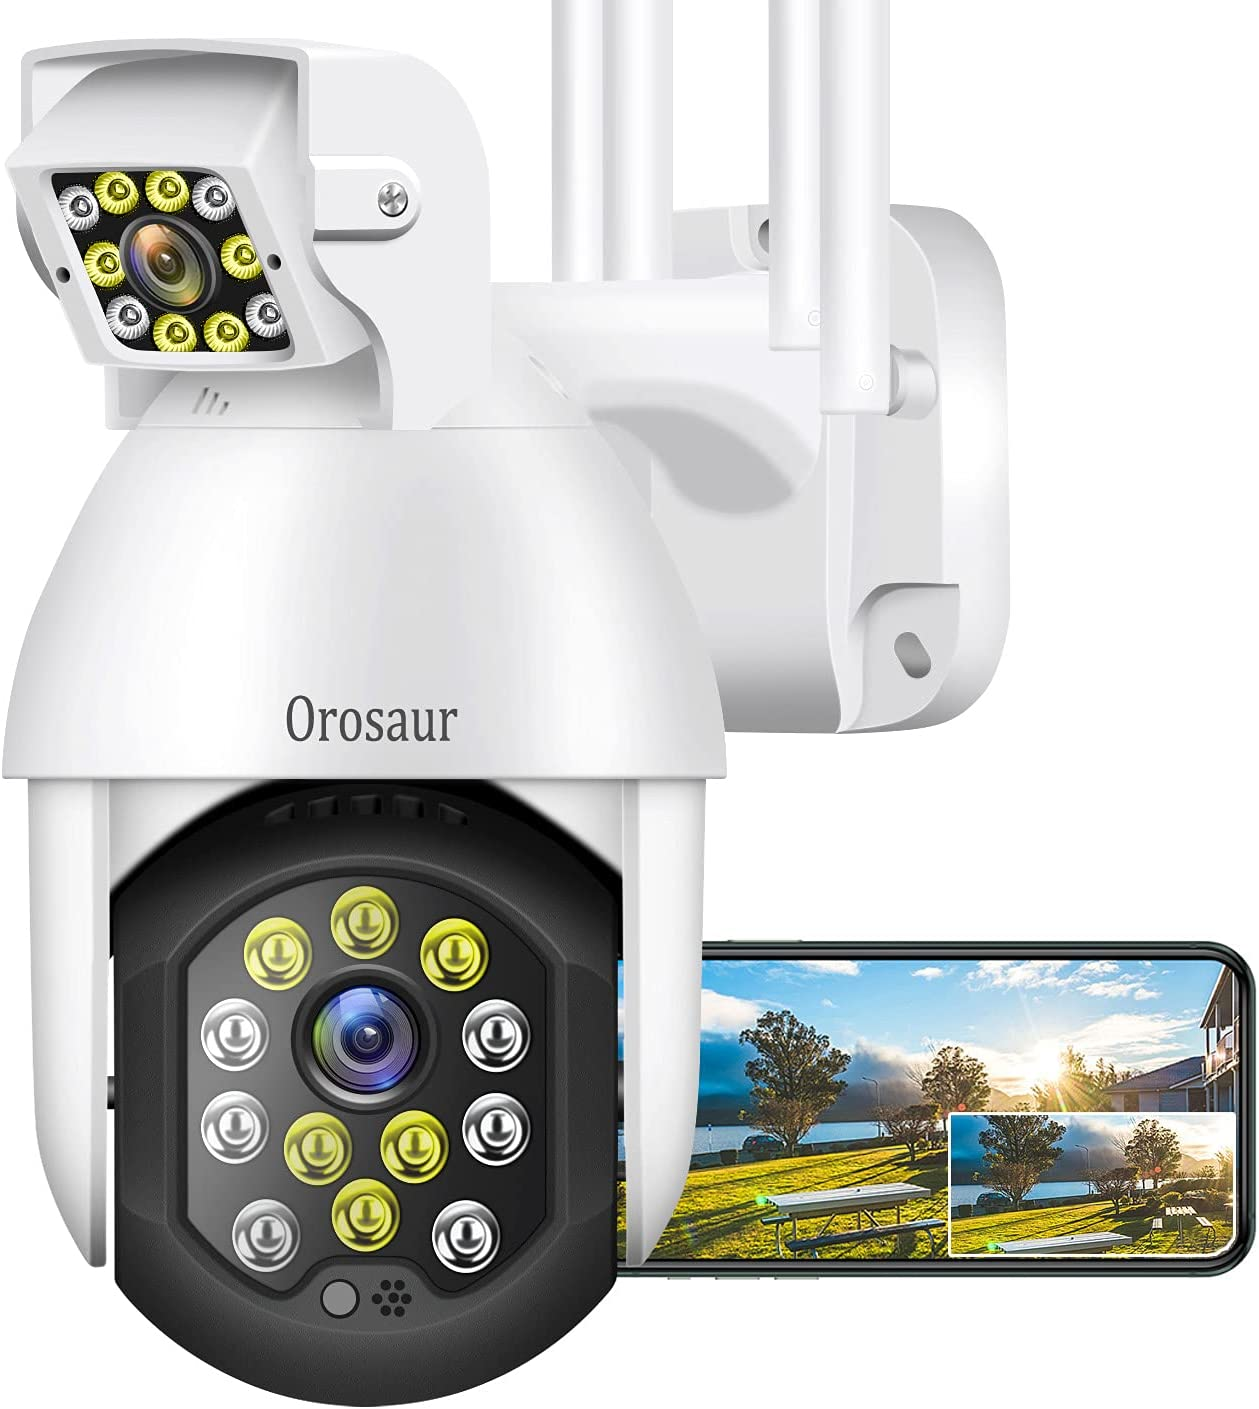 Home Security Camera Outdoor, OROSAUR 1080P Wireless WiFi Surveillance Cameras for Home, 360° View, PTZ, Color Night Vision, Motion Detection, 2-Way Audio, Cloud Storage Camera, Work with Alexa